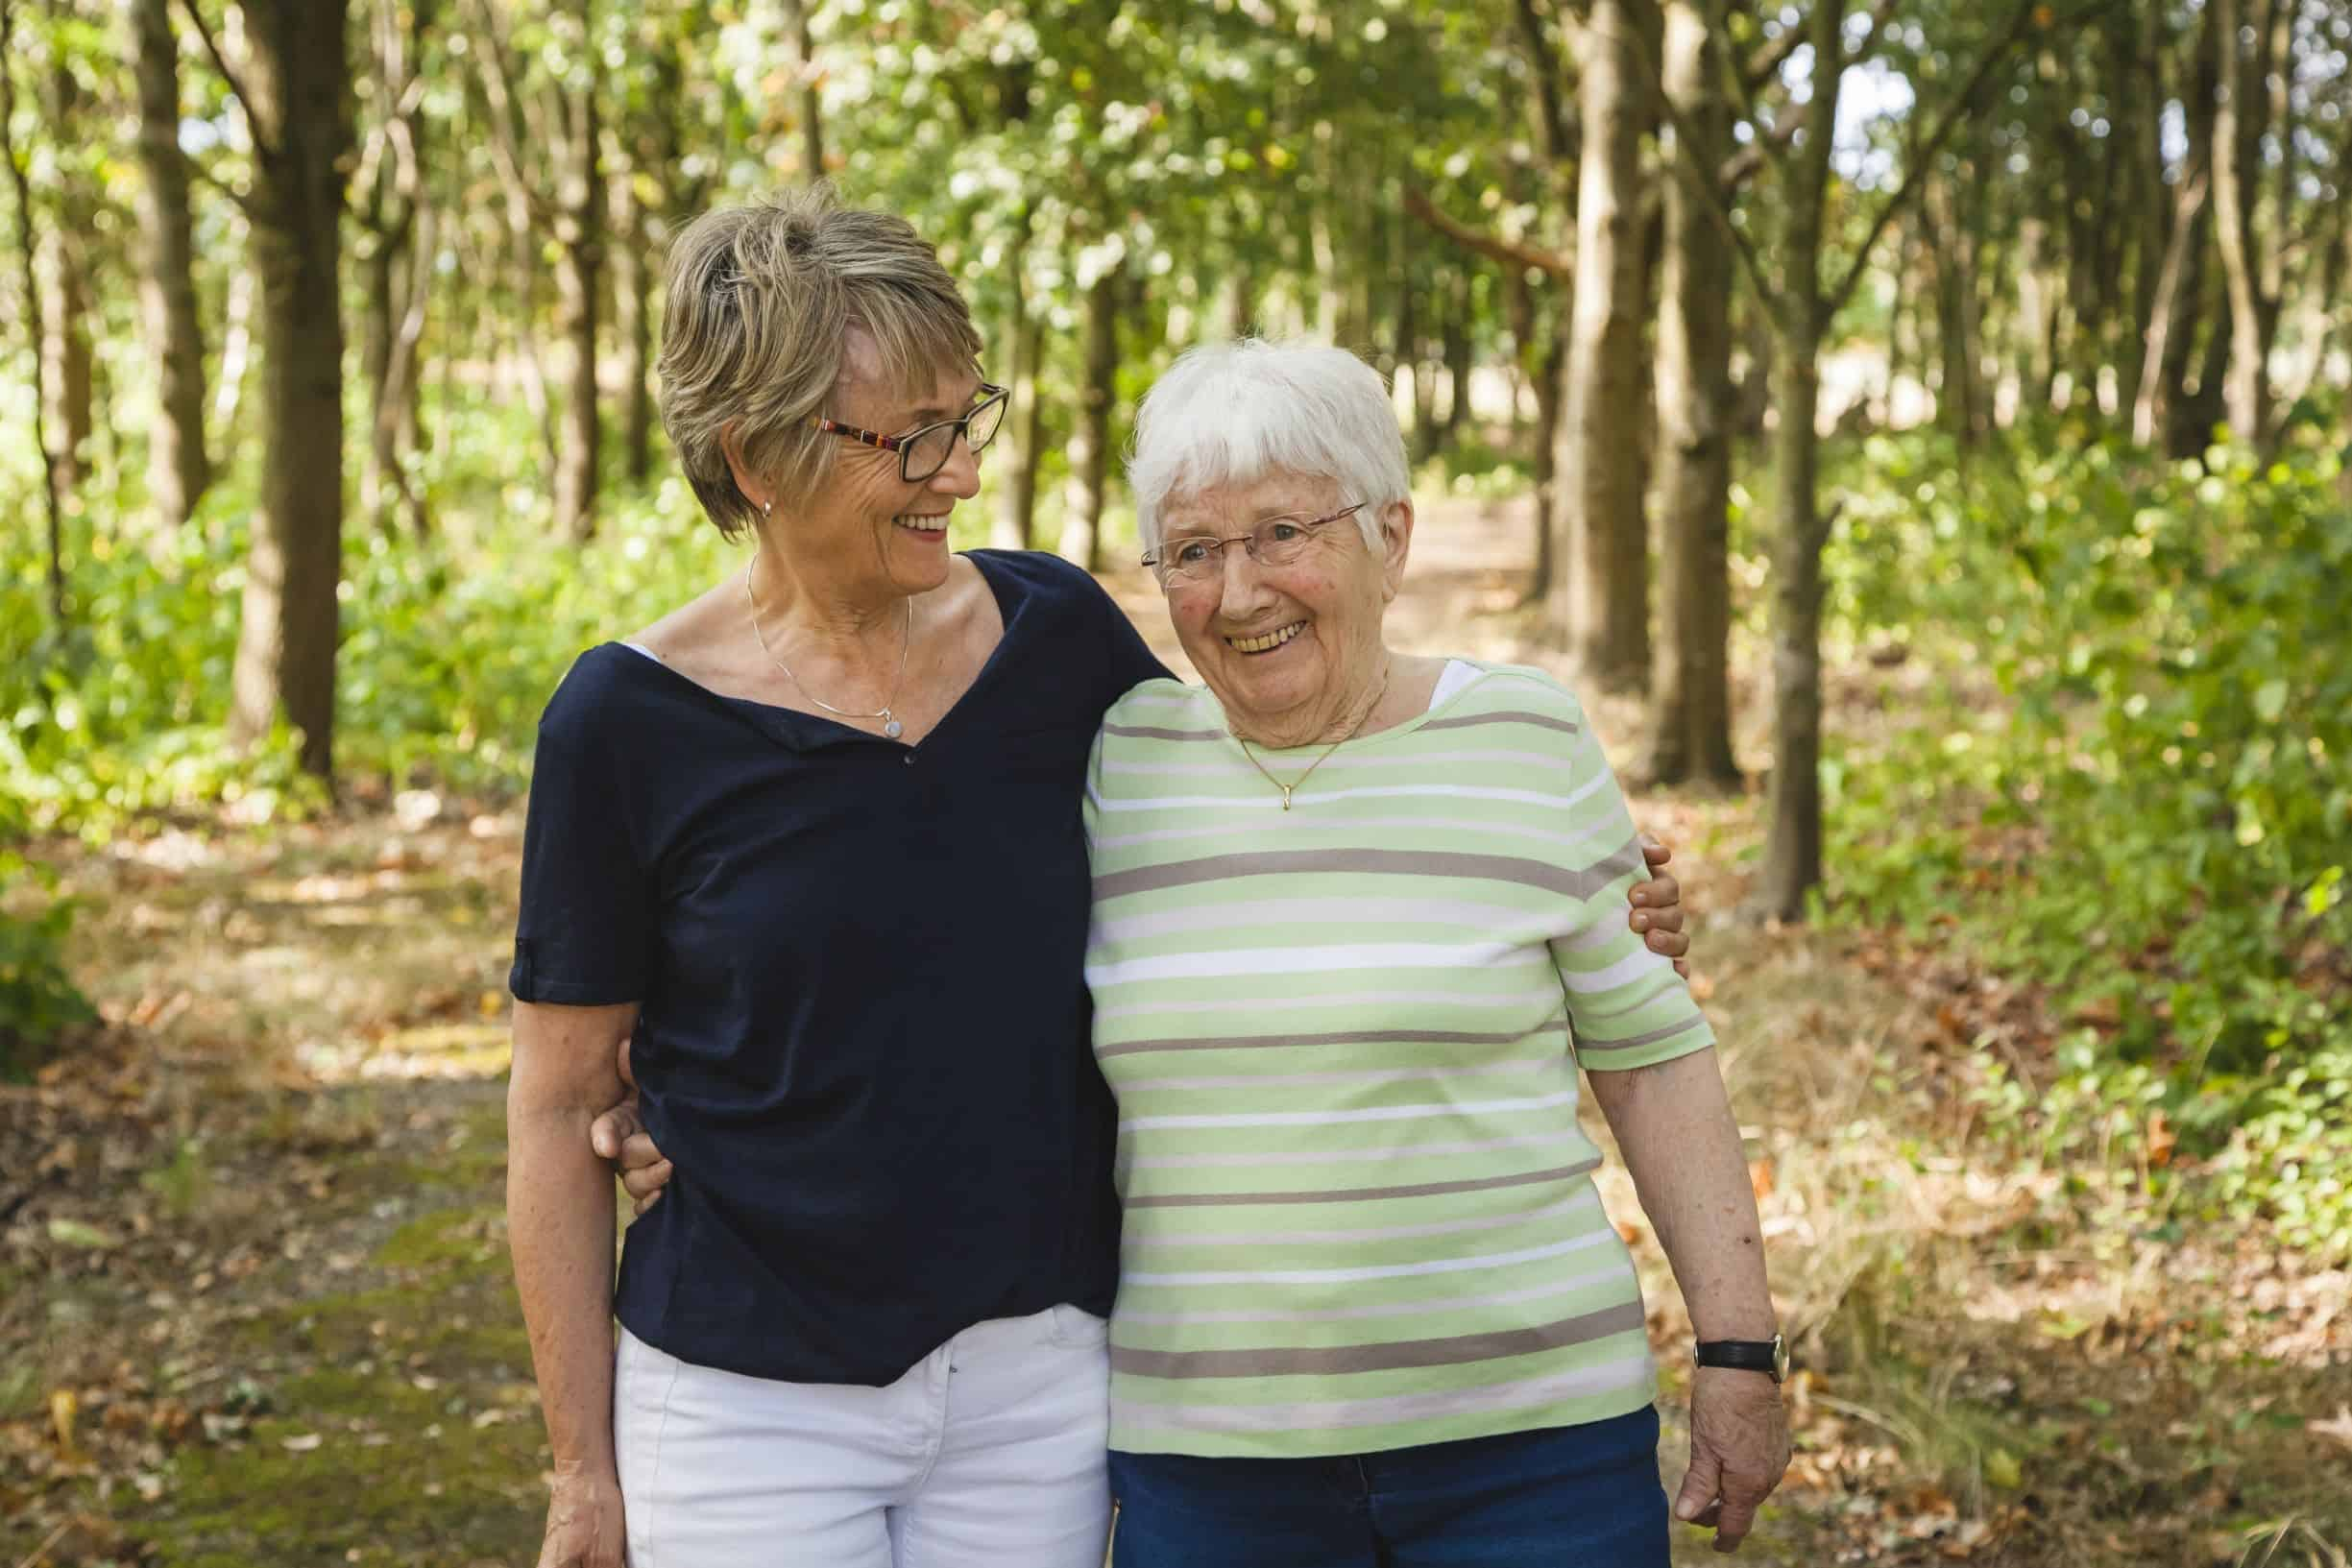 A dementia patient and a friend in the woods